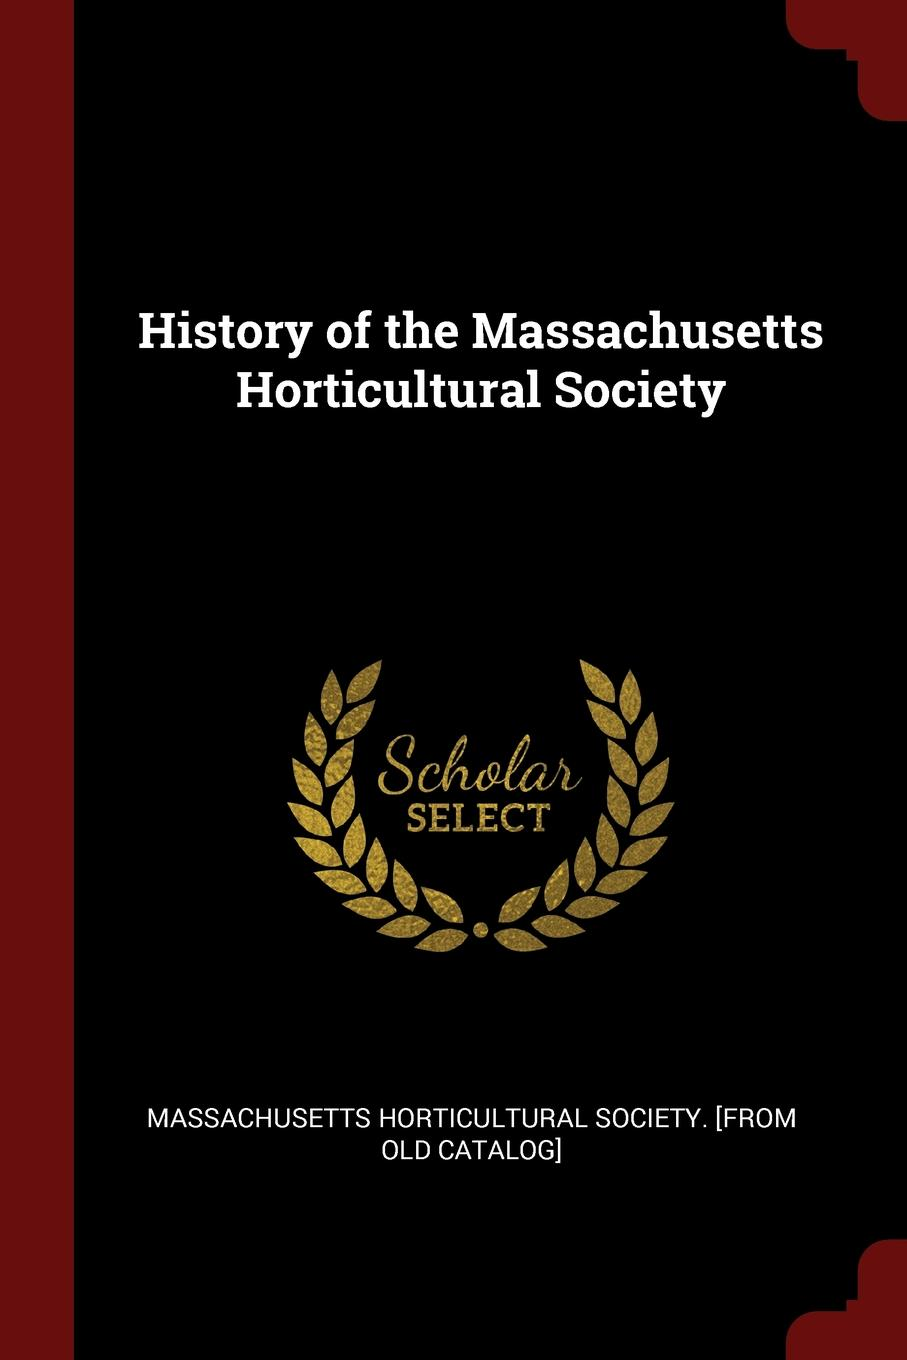 History of the Massachusetts Horticultural Society